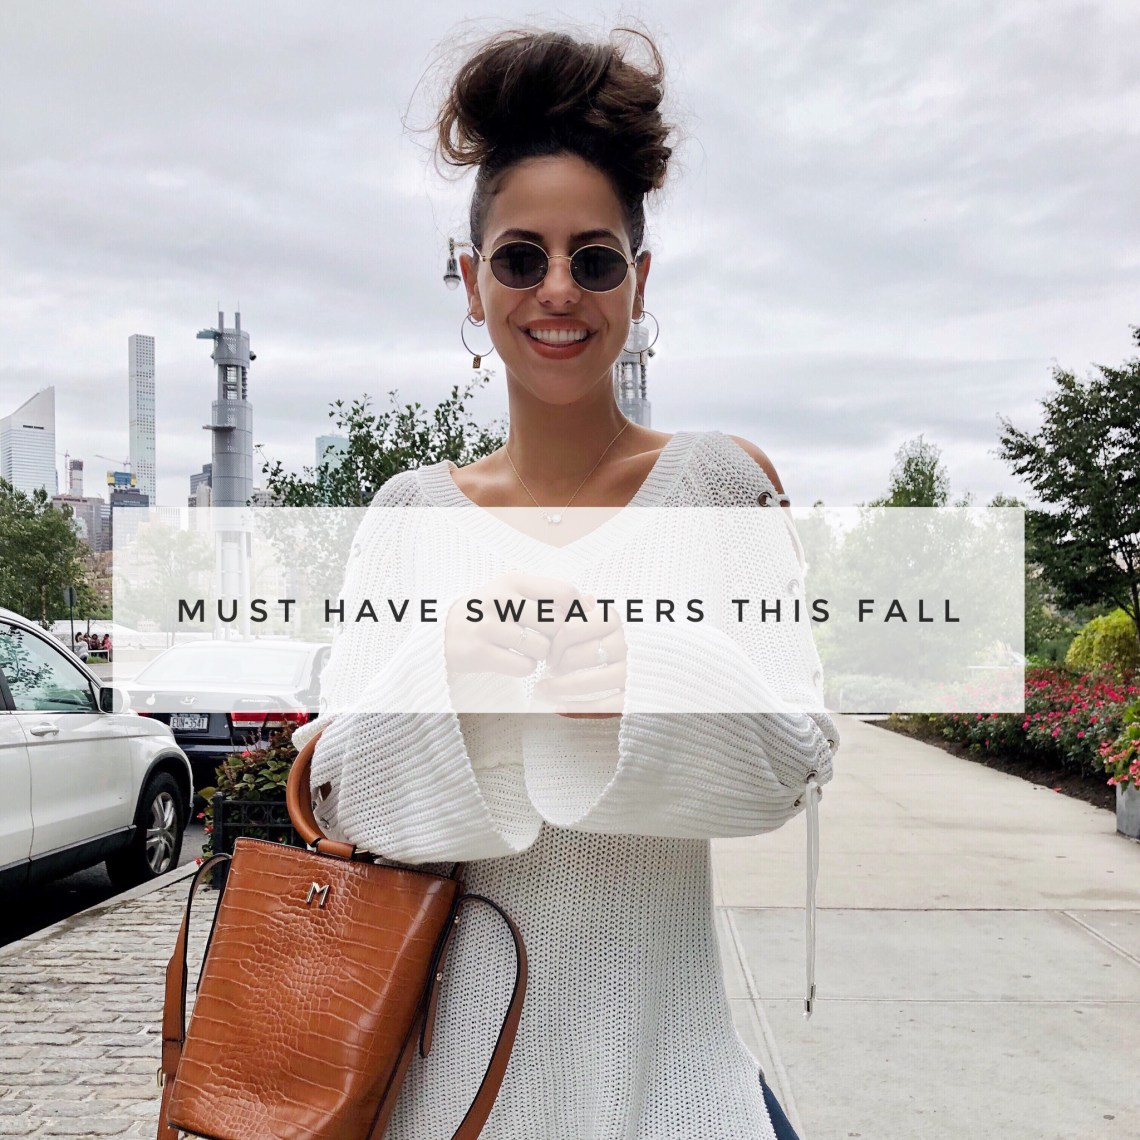 must have sweaters for fall